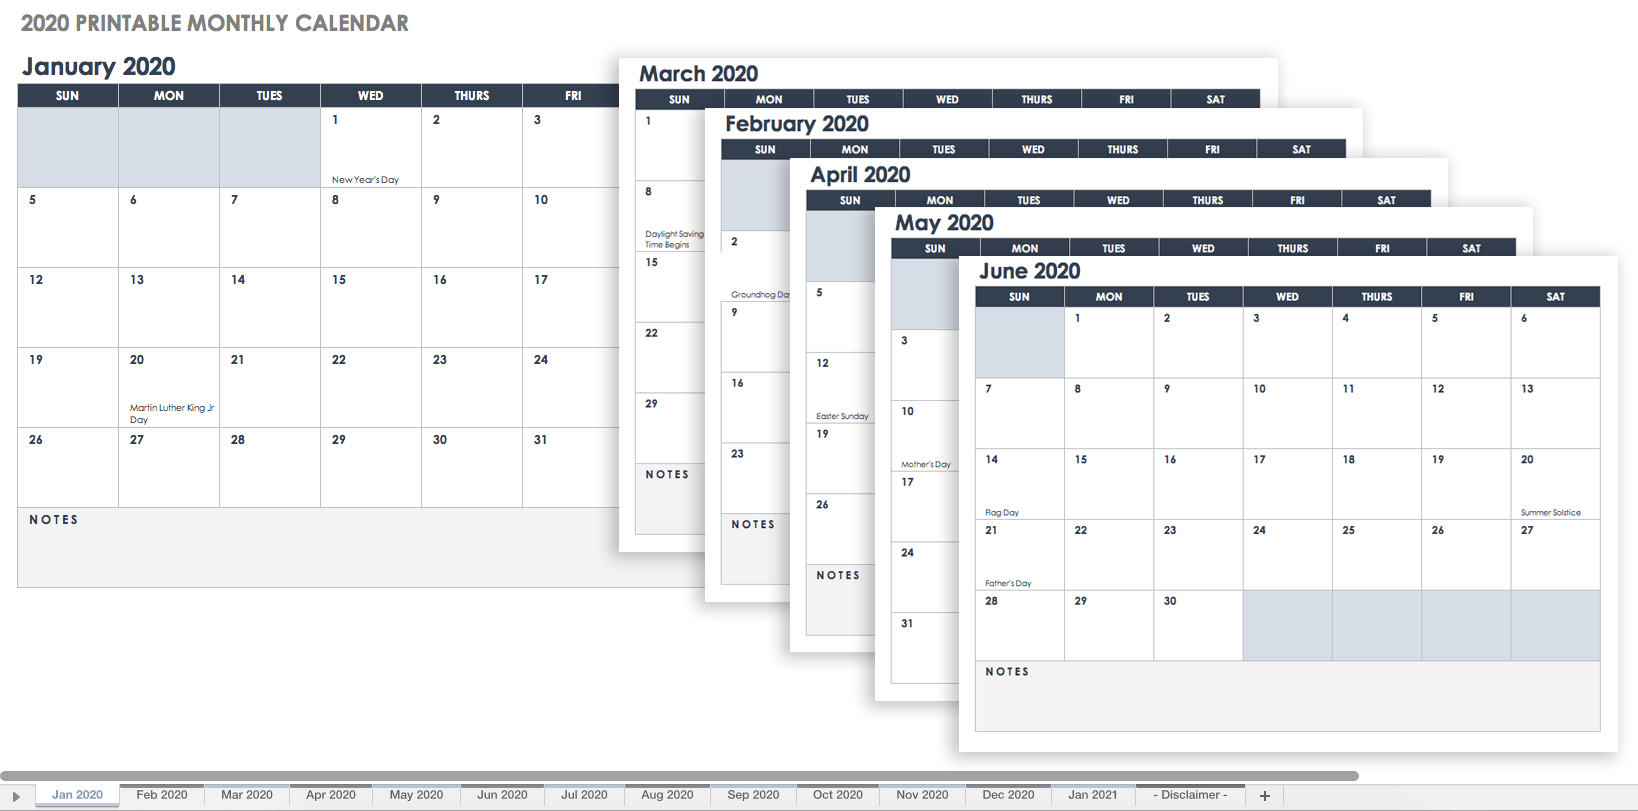 15 Free Monthly Calendar Templates | Smartsheet with regard to Blank Calendar With Open Squares